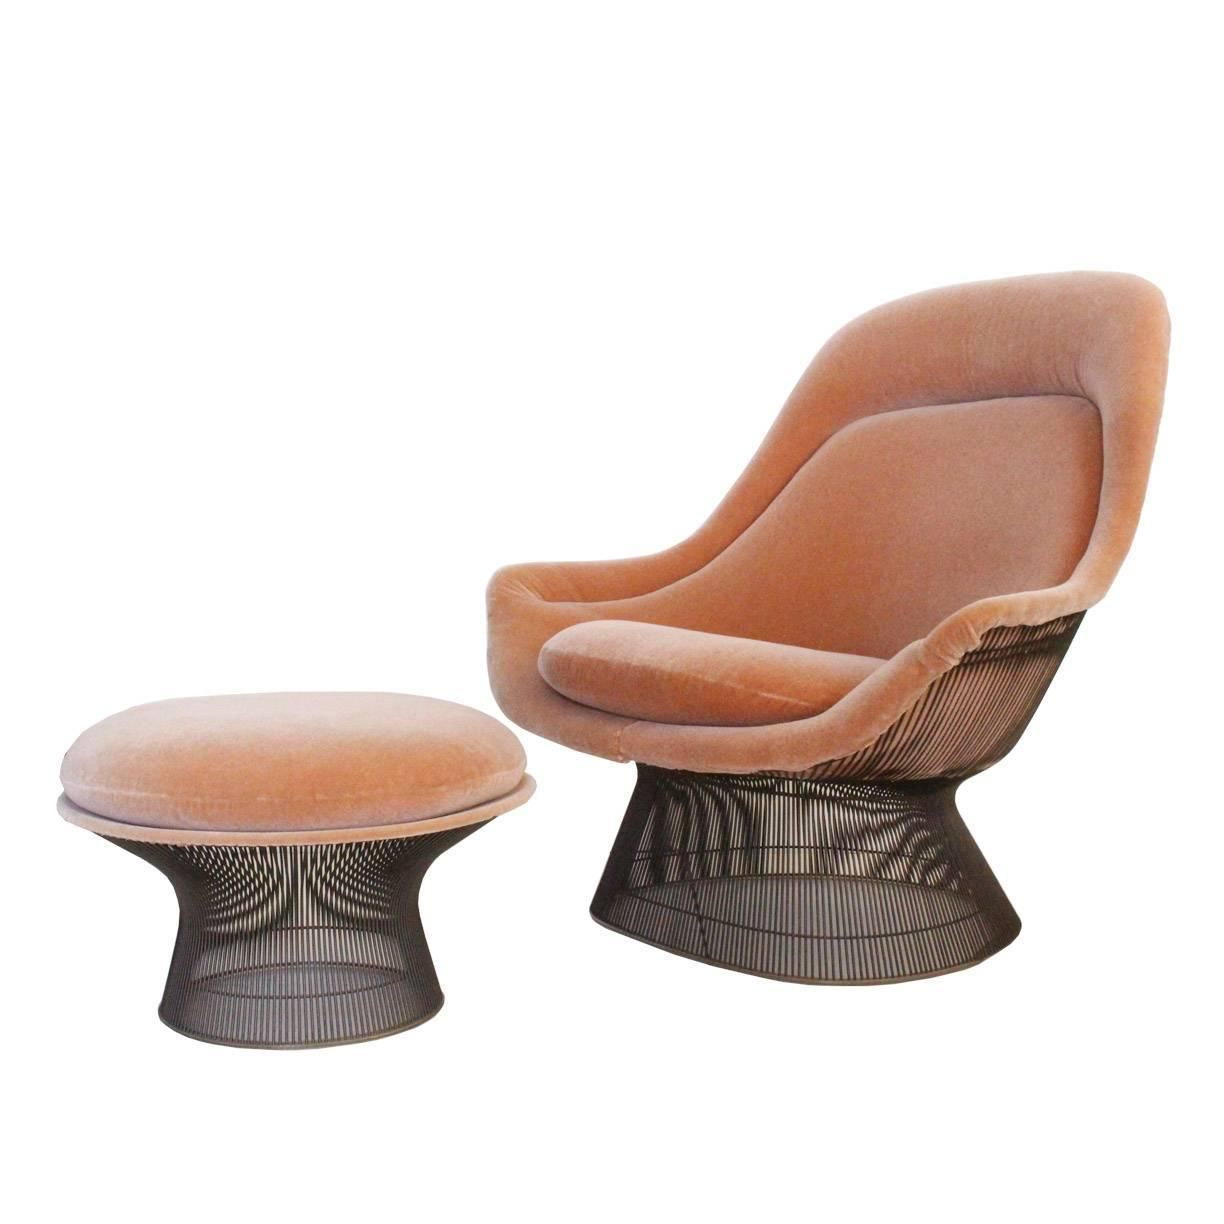 bronze lounge chair and ottoman by warren platner for knoll at 1stdibs